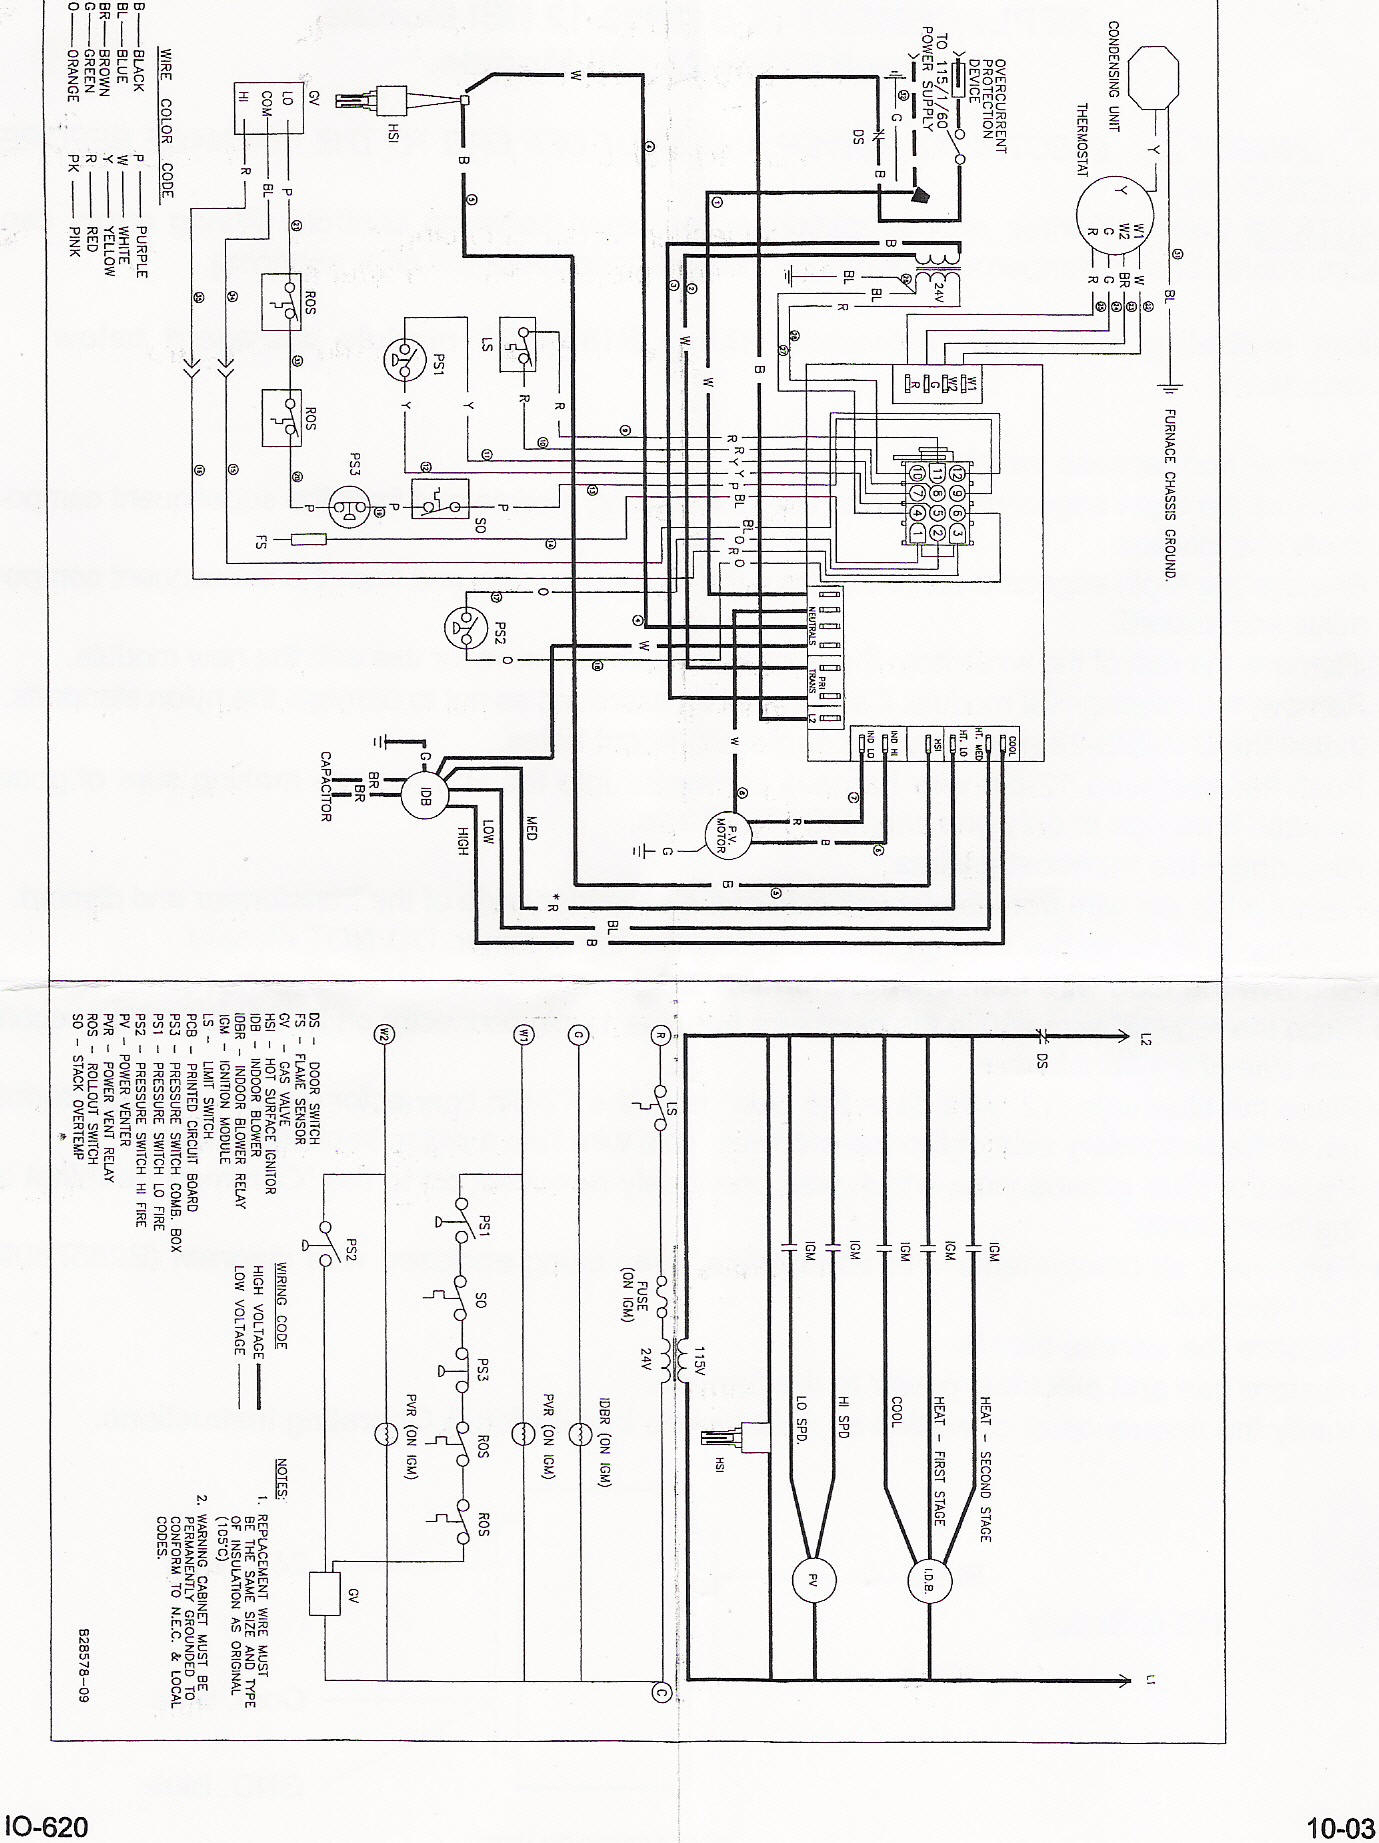 Lennox Furnace Control Board Wiring Diagram Urgent Lennox G61mpv Furnace Schematic Doityourself Lennox 80mgf Gas Furnace Question Hvac Diy Chatroom 65k29 Bcc Blower Control Board For Lennox Furnaces Hvac Control Board Wiring